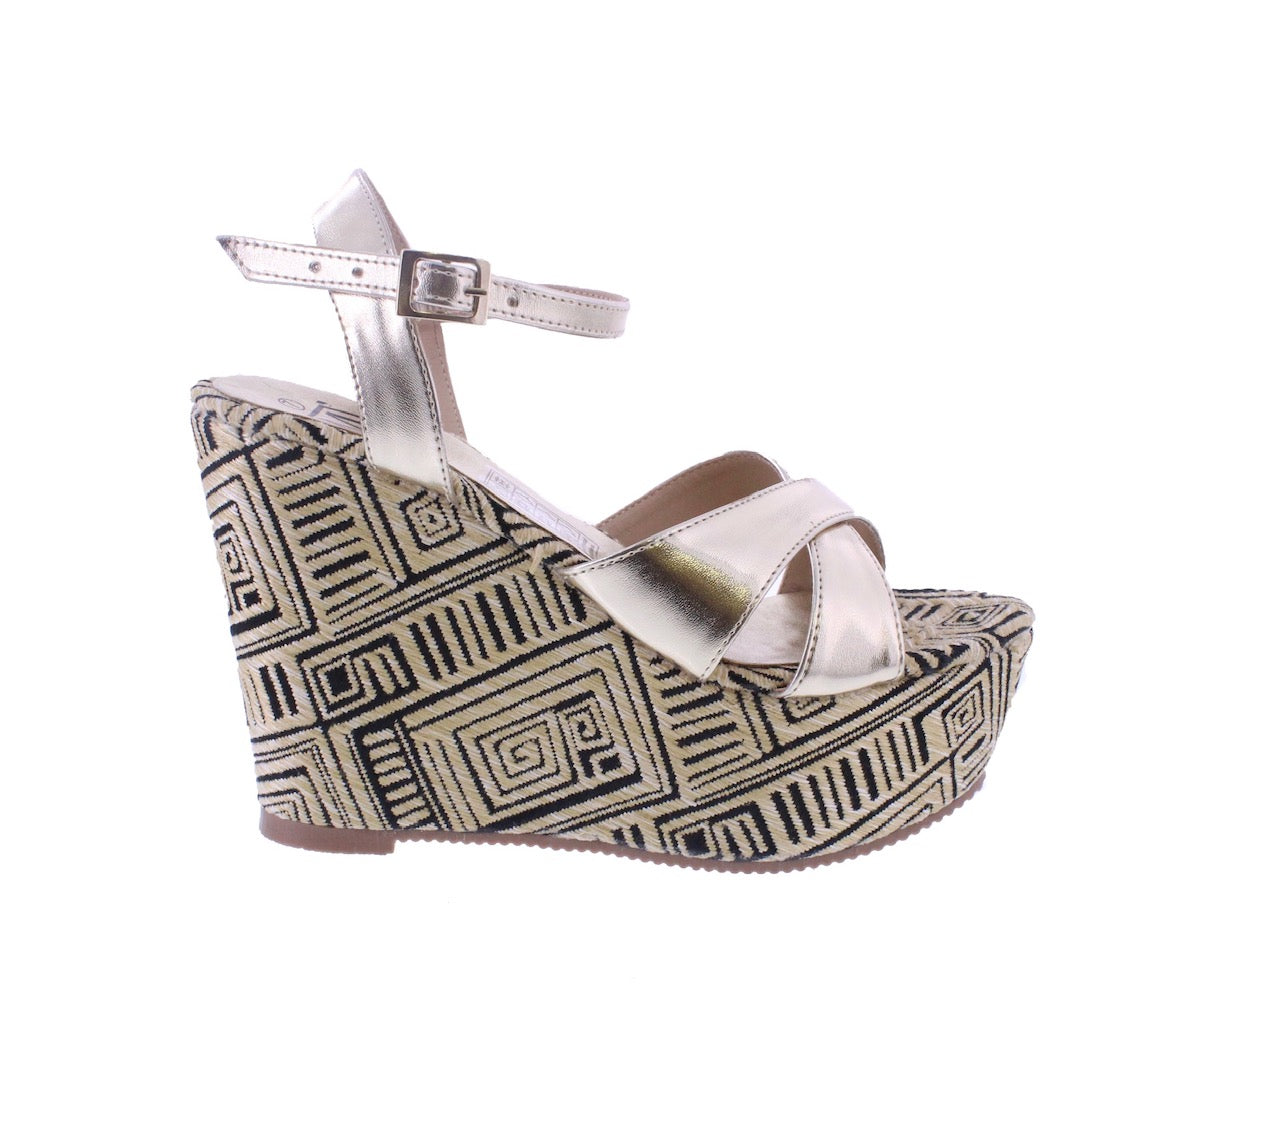 Perk up your footwear with these eye-catching jute, tribal print wedges dipped in metallic gold. that show off your fresh pedicure on warm-weather days. A buckle closure at the ankle ensures a comfortable, secure fit. In New Orleans at Shoe Be Do.